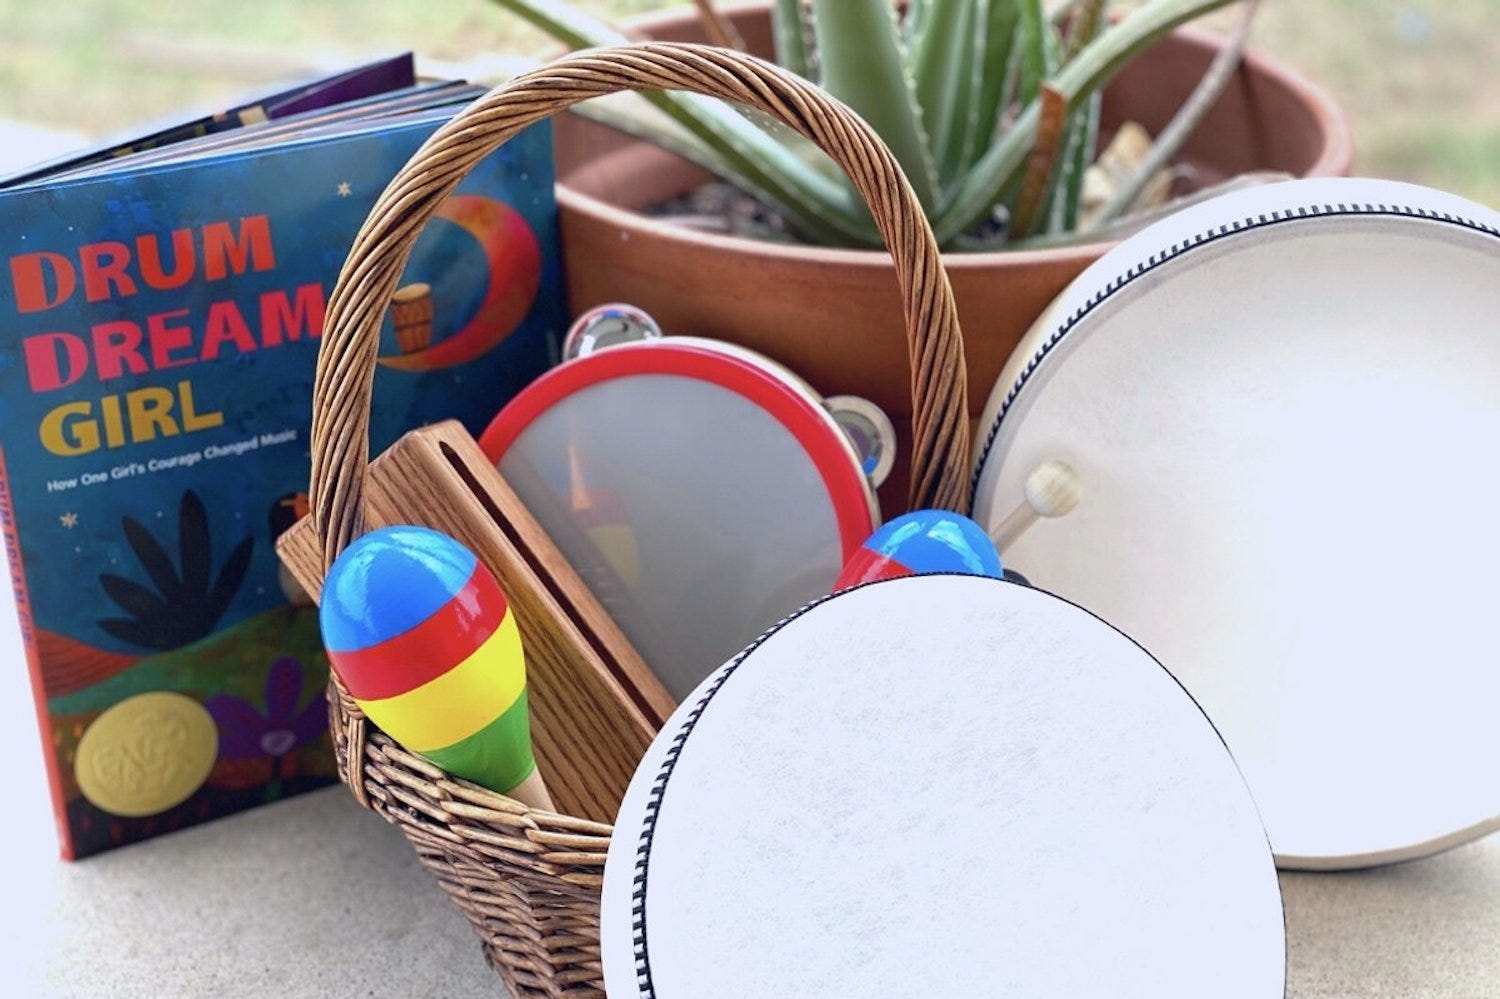 """A book titled """"Drum Dream Girl,"""" a basket with percussion instruments, and two small drums"""